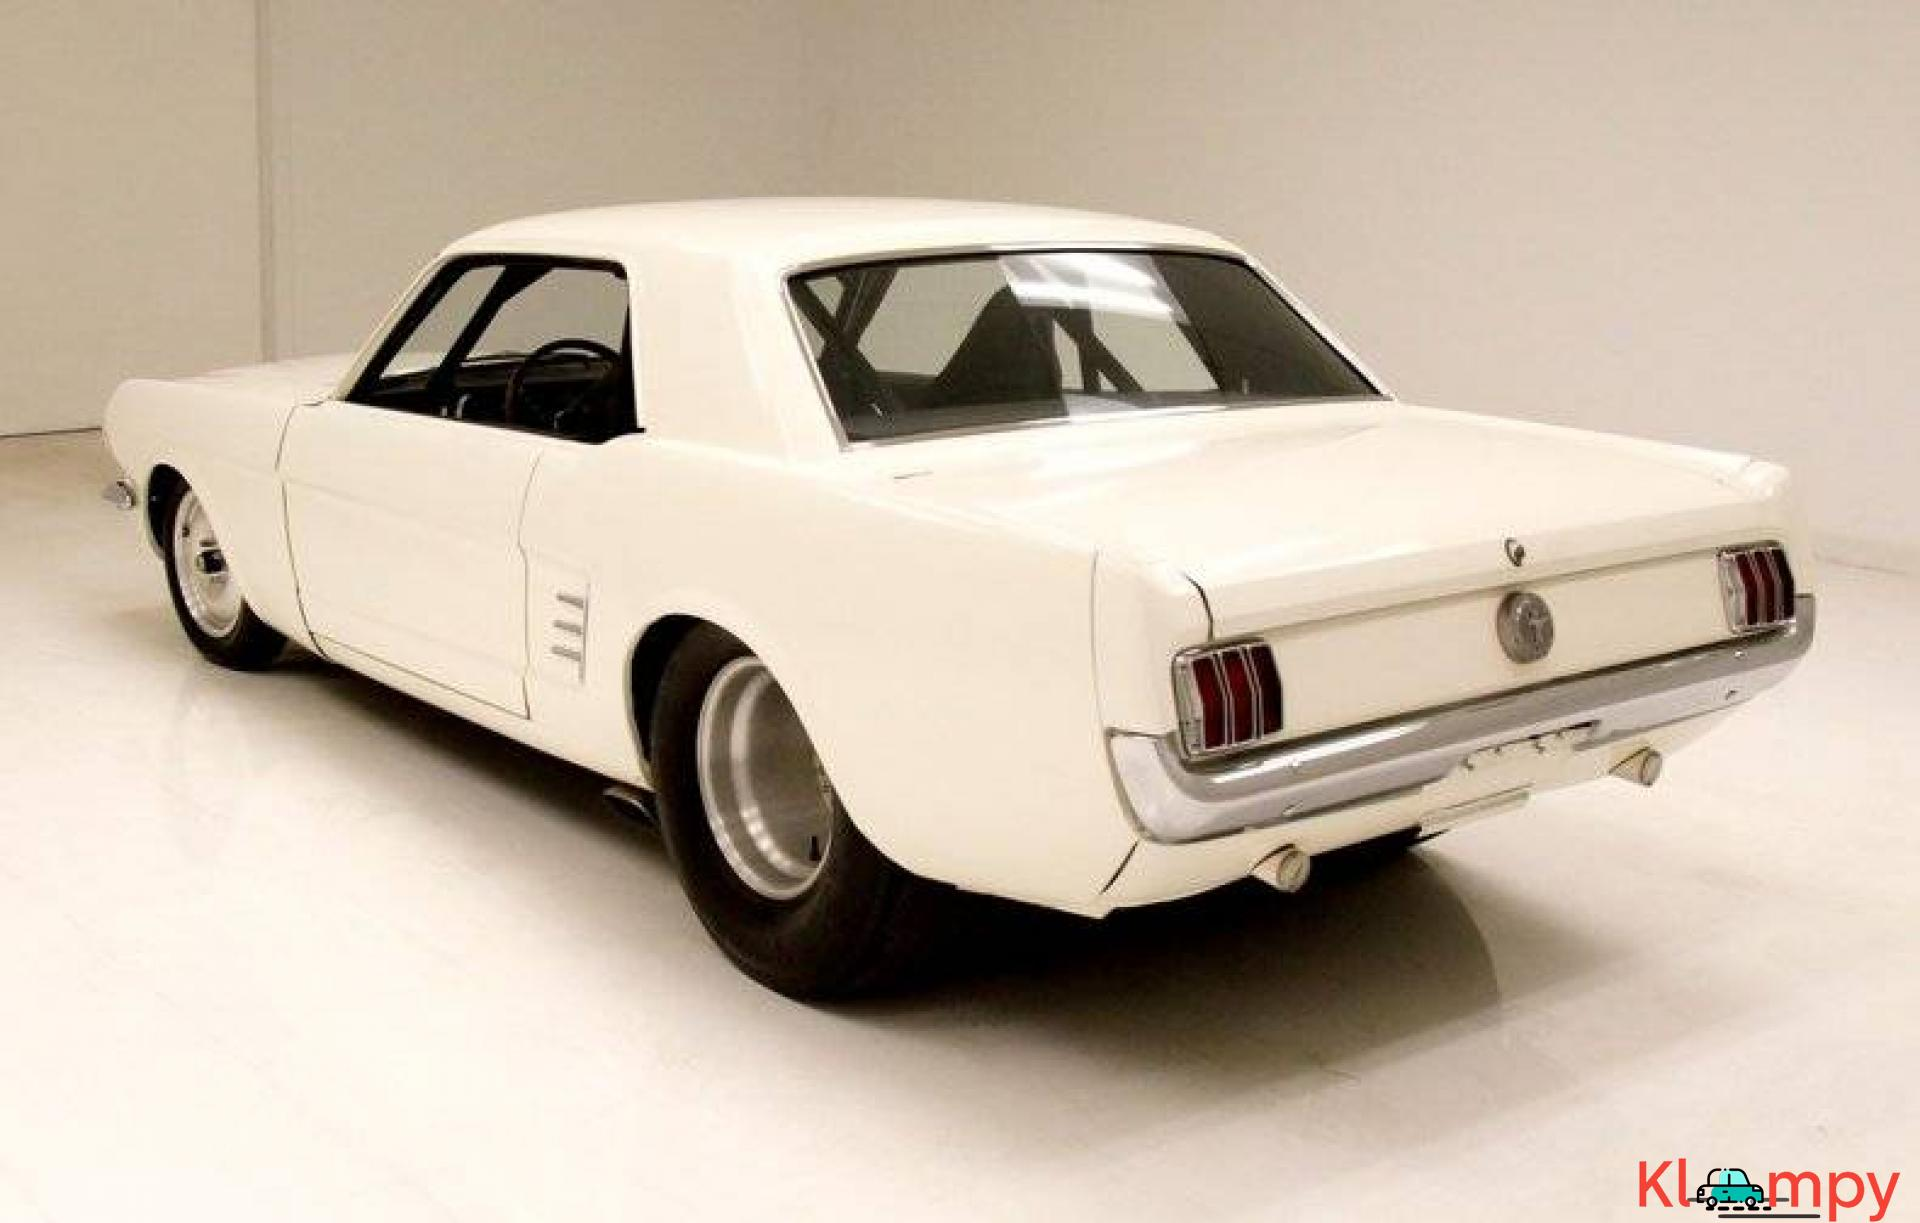 1966 Ford Mustang Coupe 302ci V8 White - 3/20